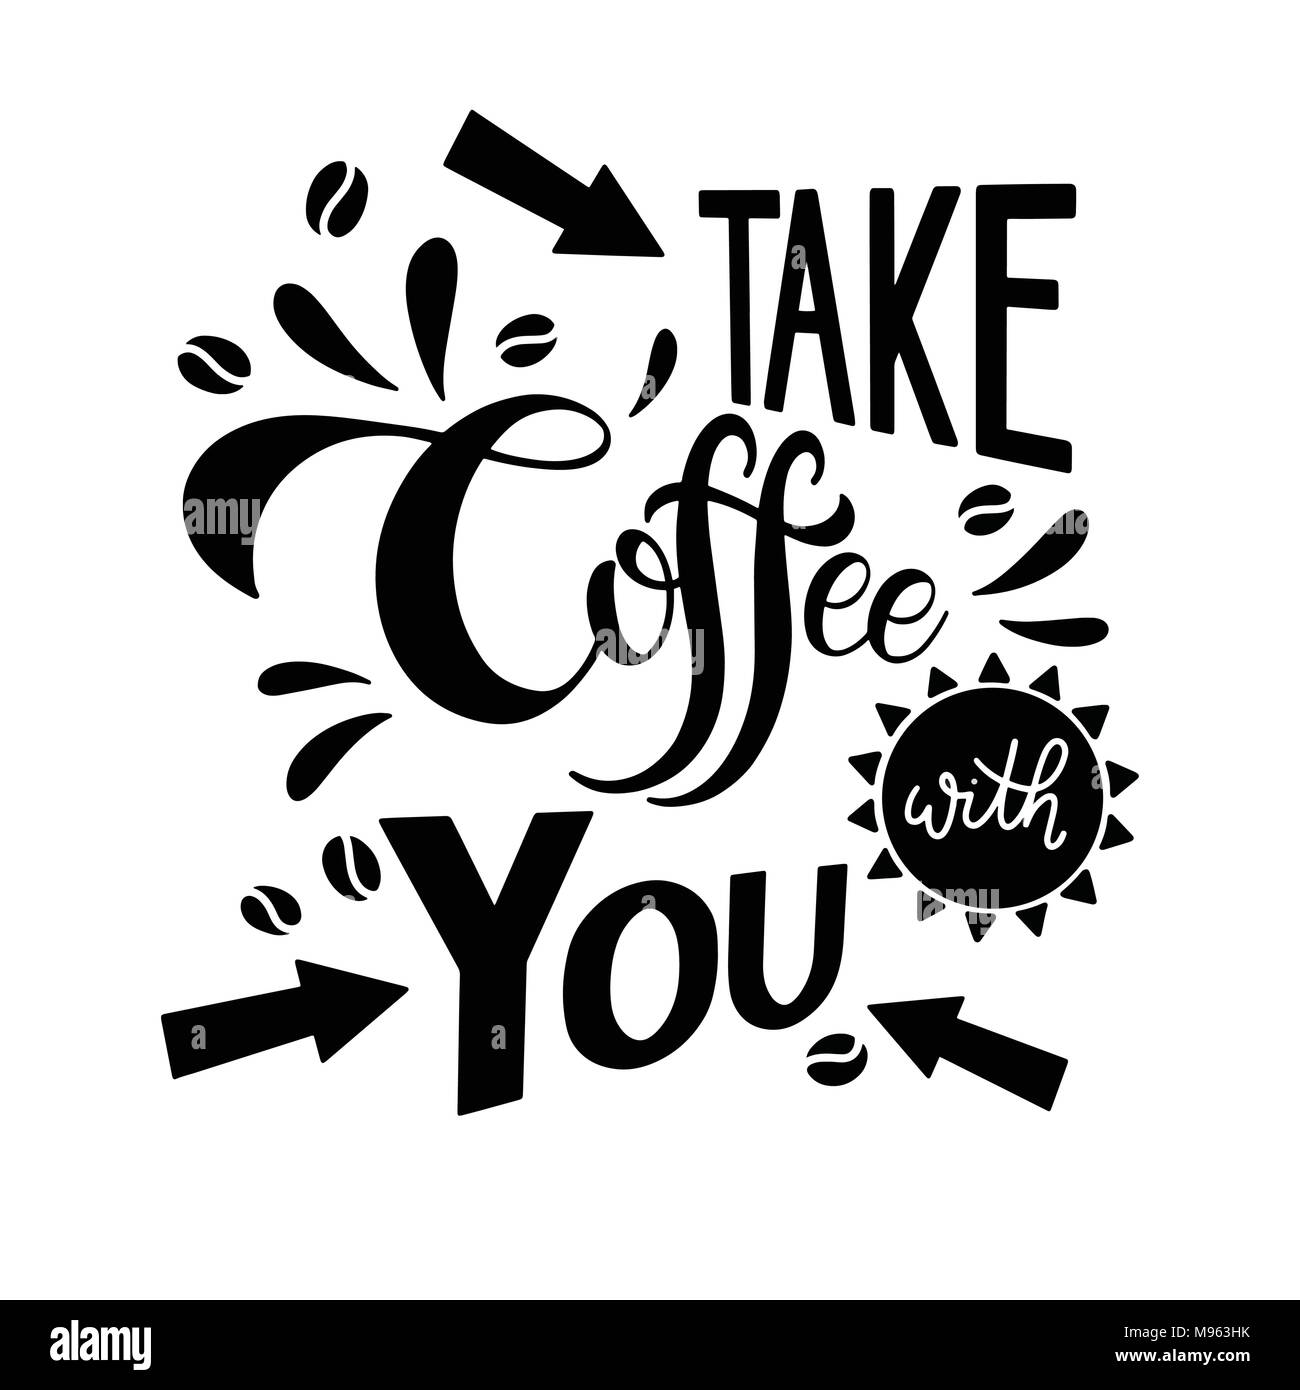 take coffee you lettering coffee quotes handwritten design